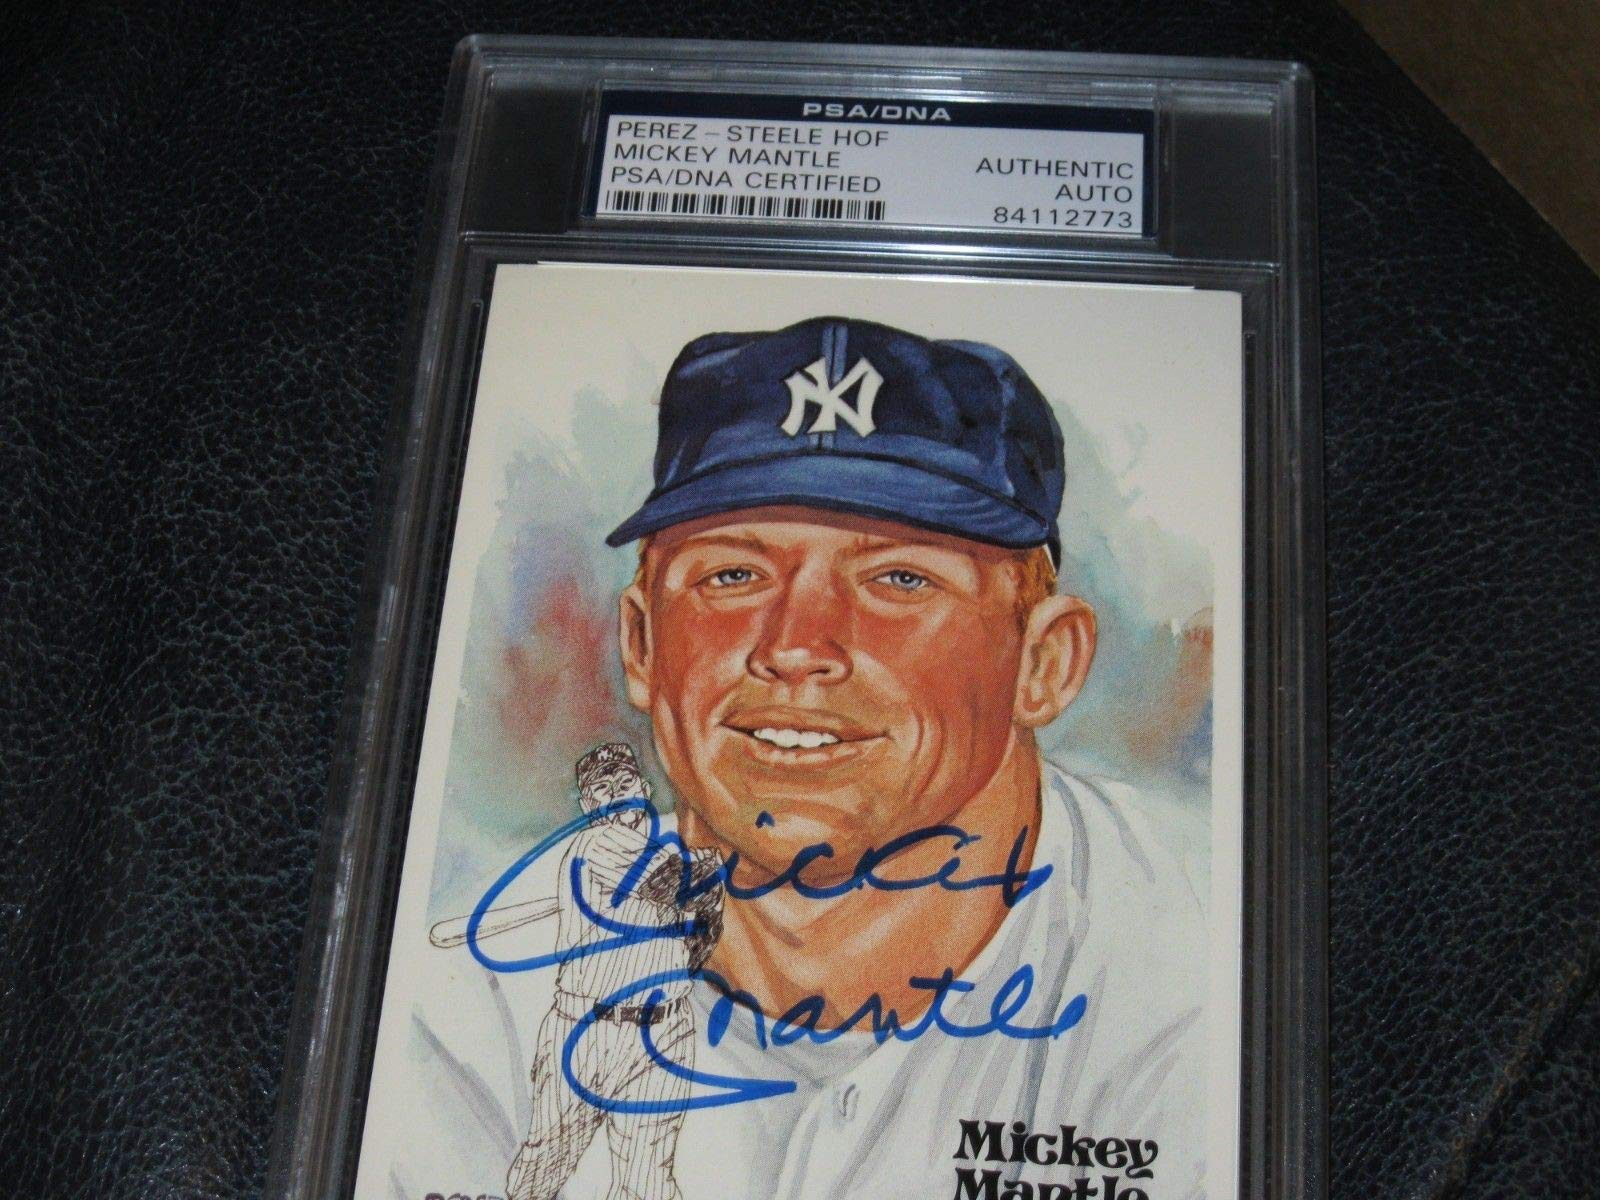 Mickey Mantle Autographed Signed Prez Steele Hof Postcard PSA/DNA Cert Encapsulated